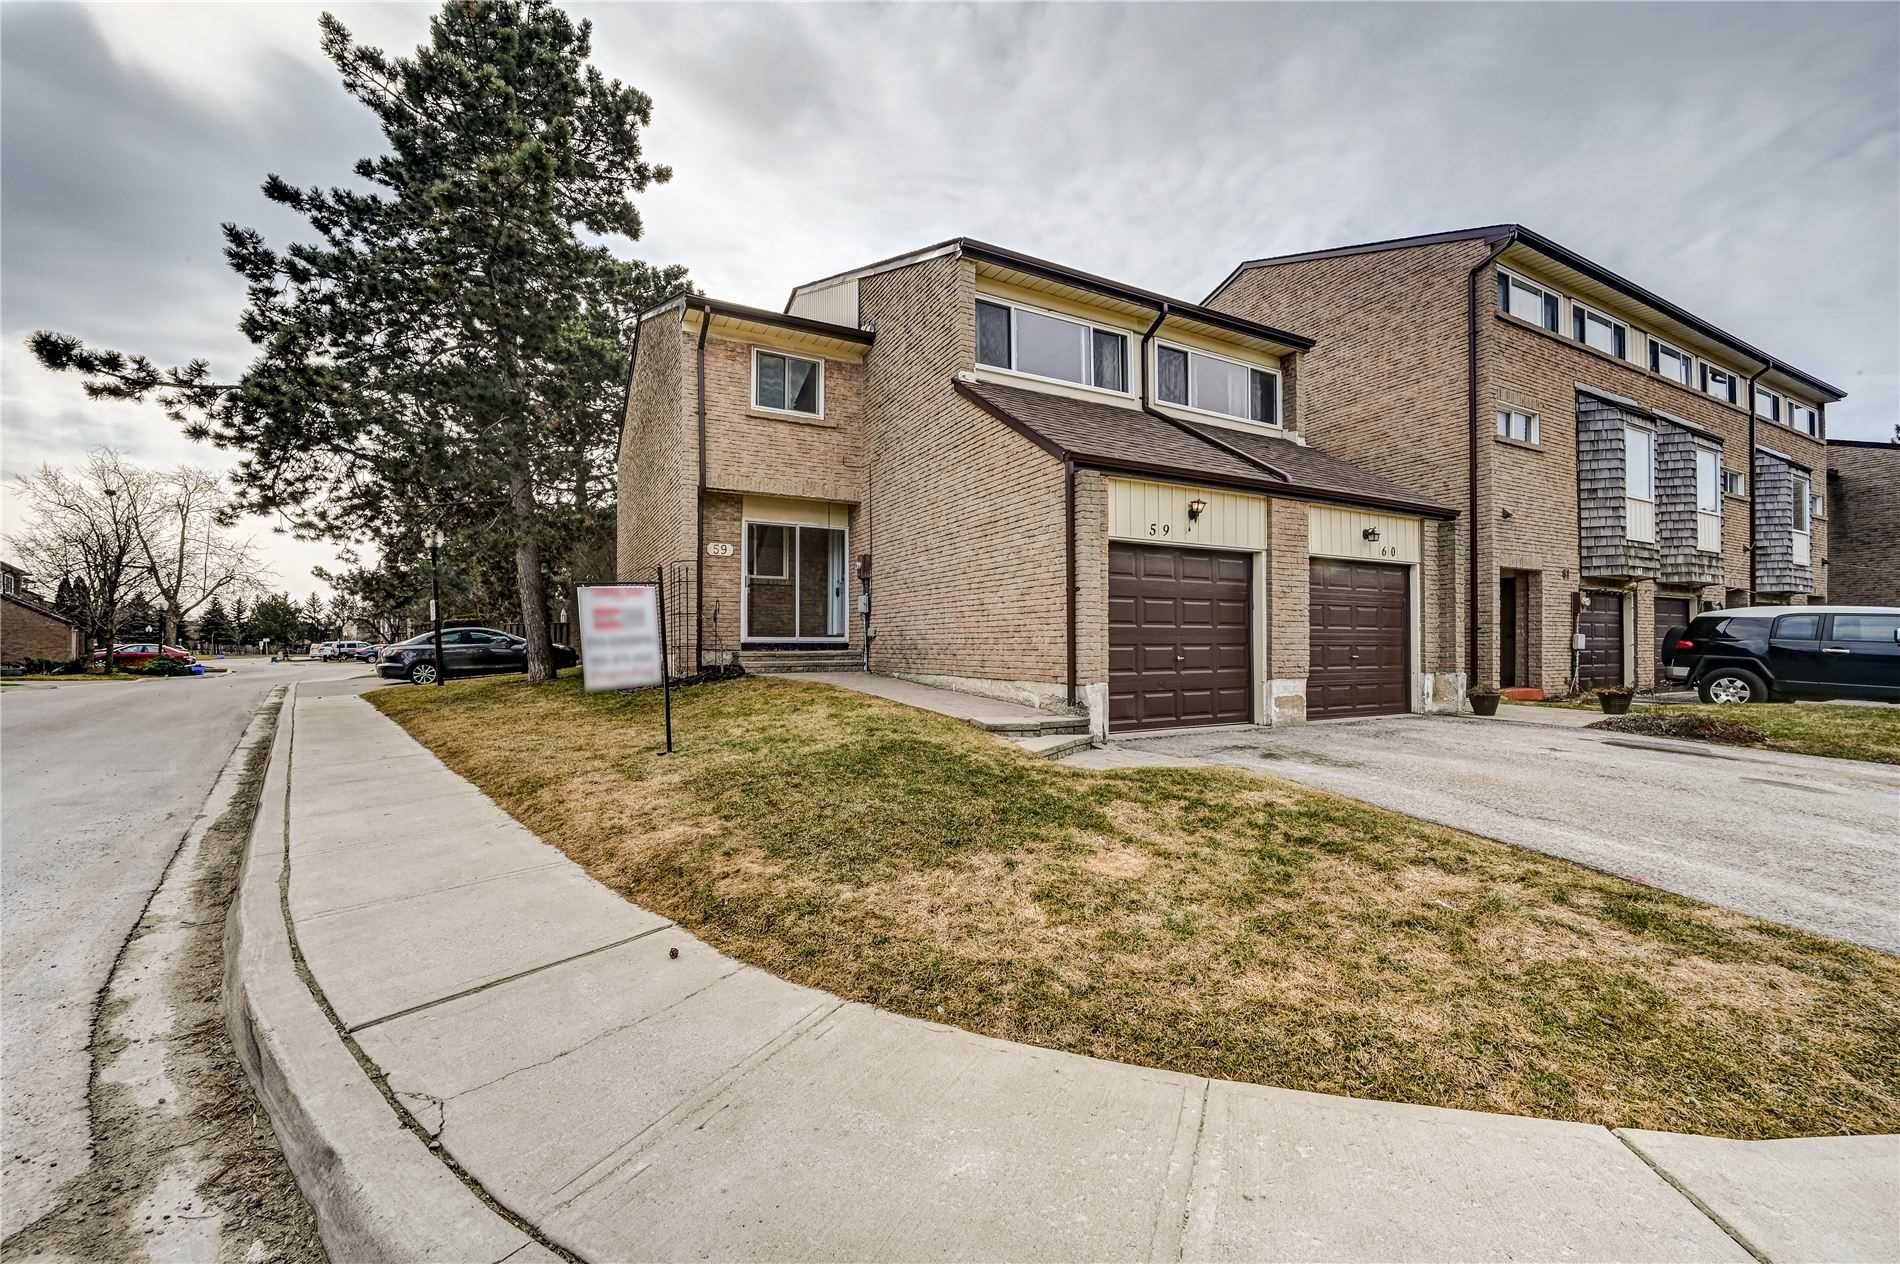 Main Photo: 59 661 Childs Drive in Milton: Timberlea Condo for sale : MLS®# W4741228